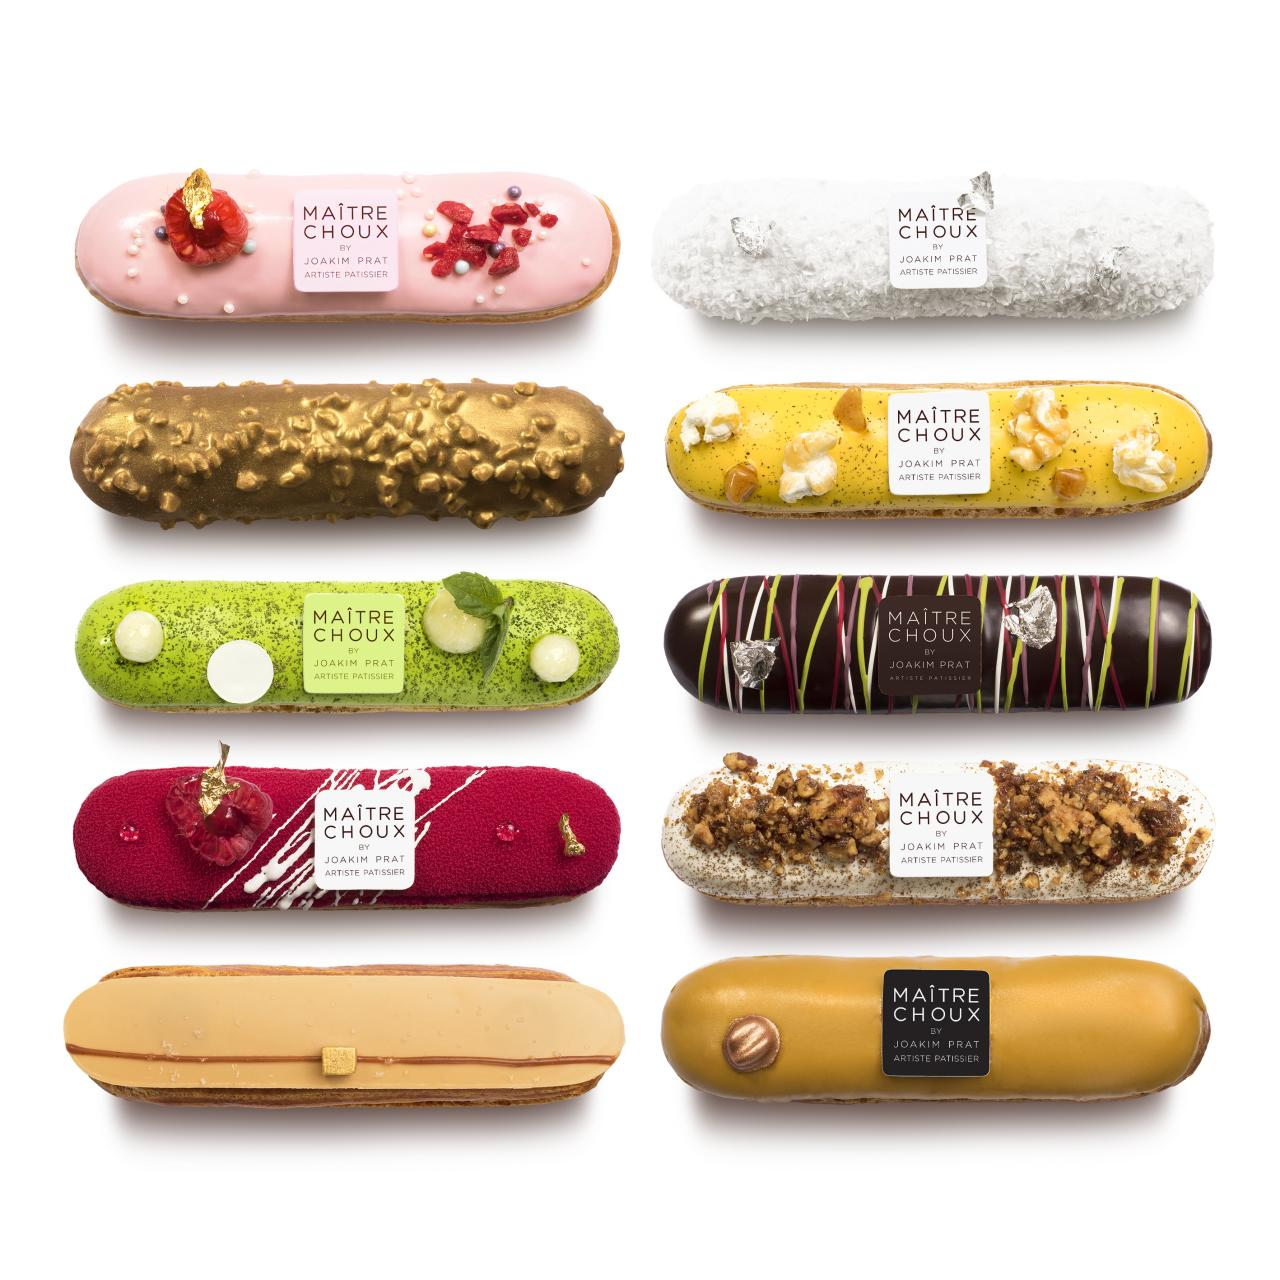 Maitre Choux eclairs. Photo: HdG photography